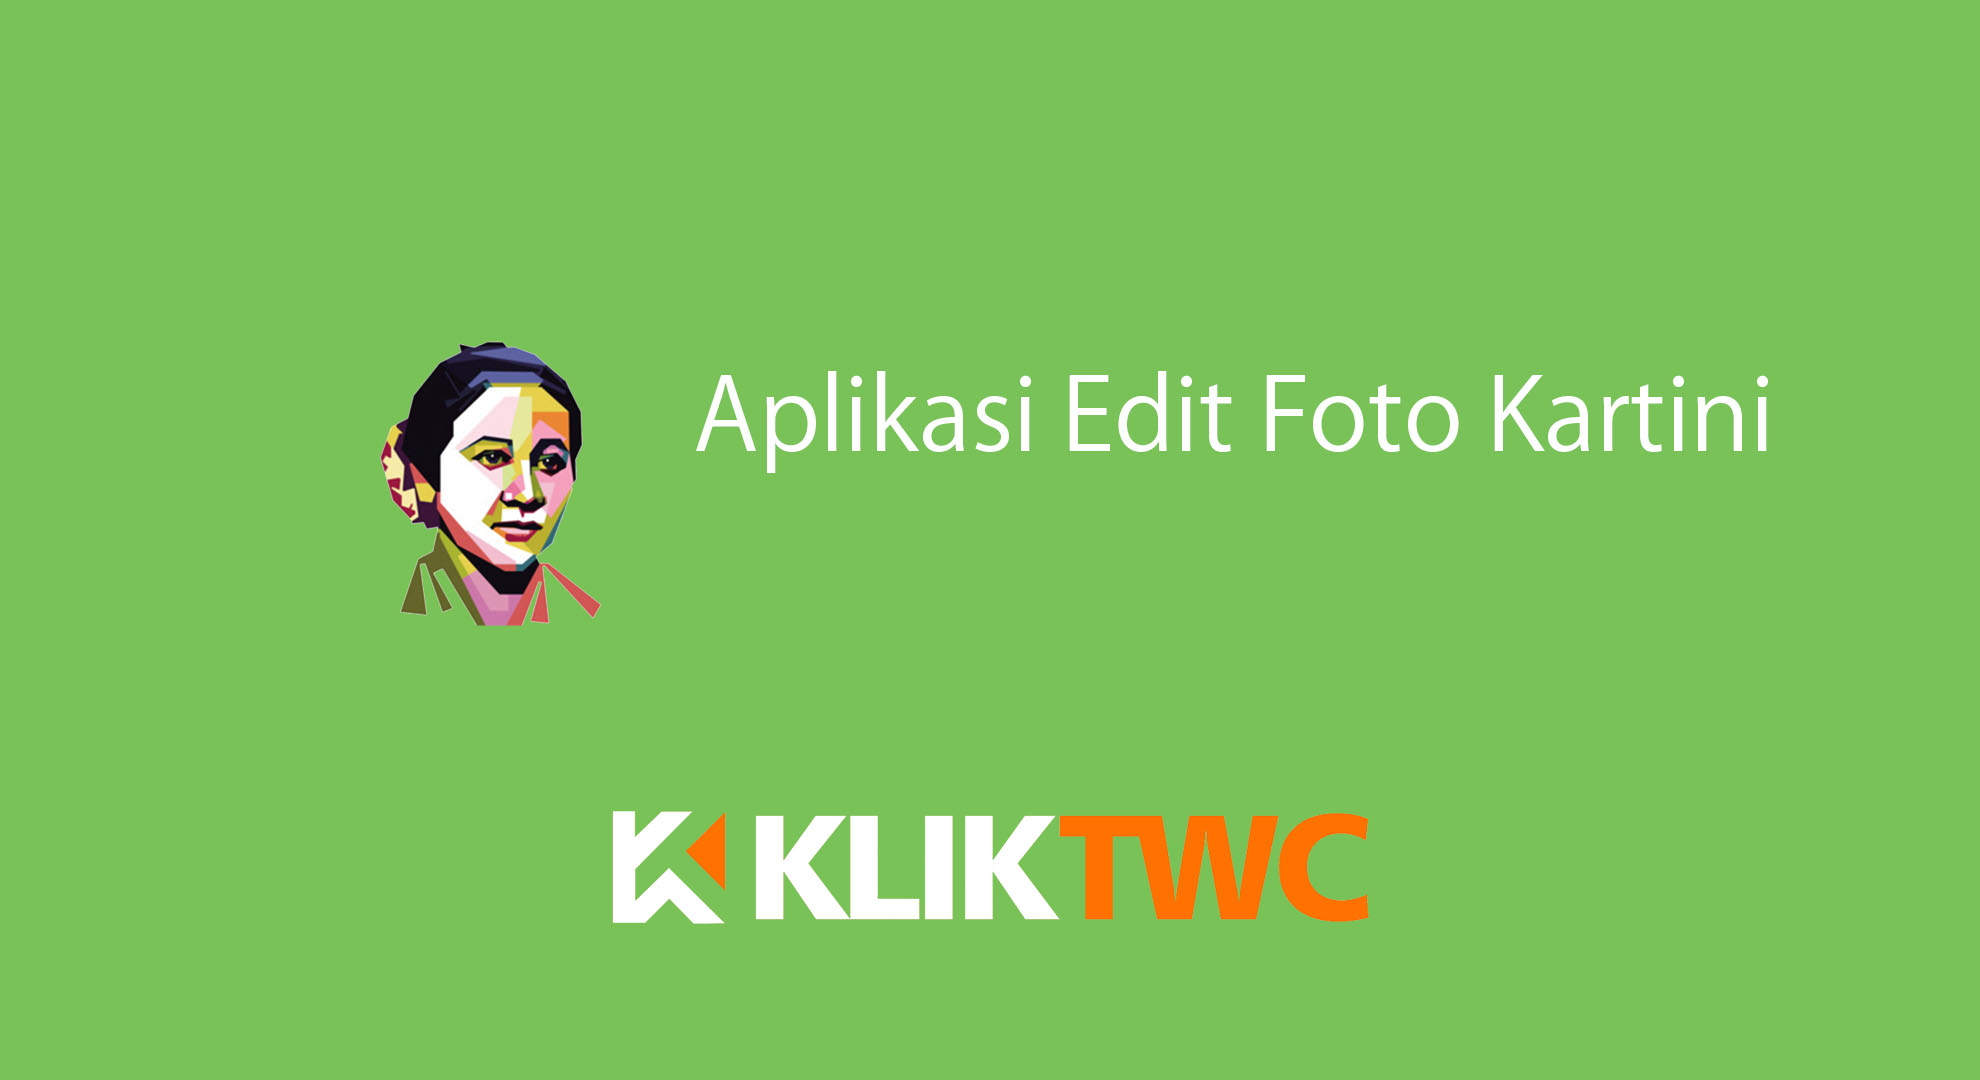 Aplikasi Edit Foto Kartini